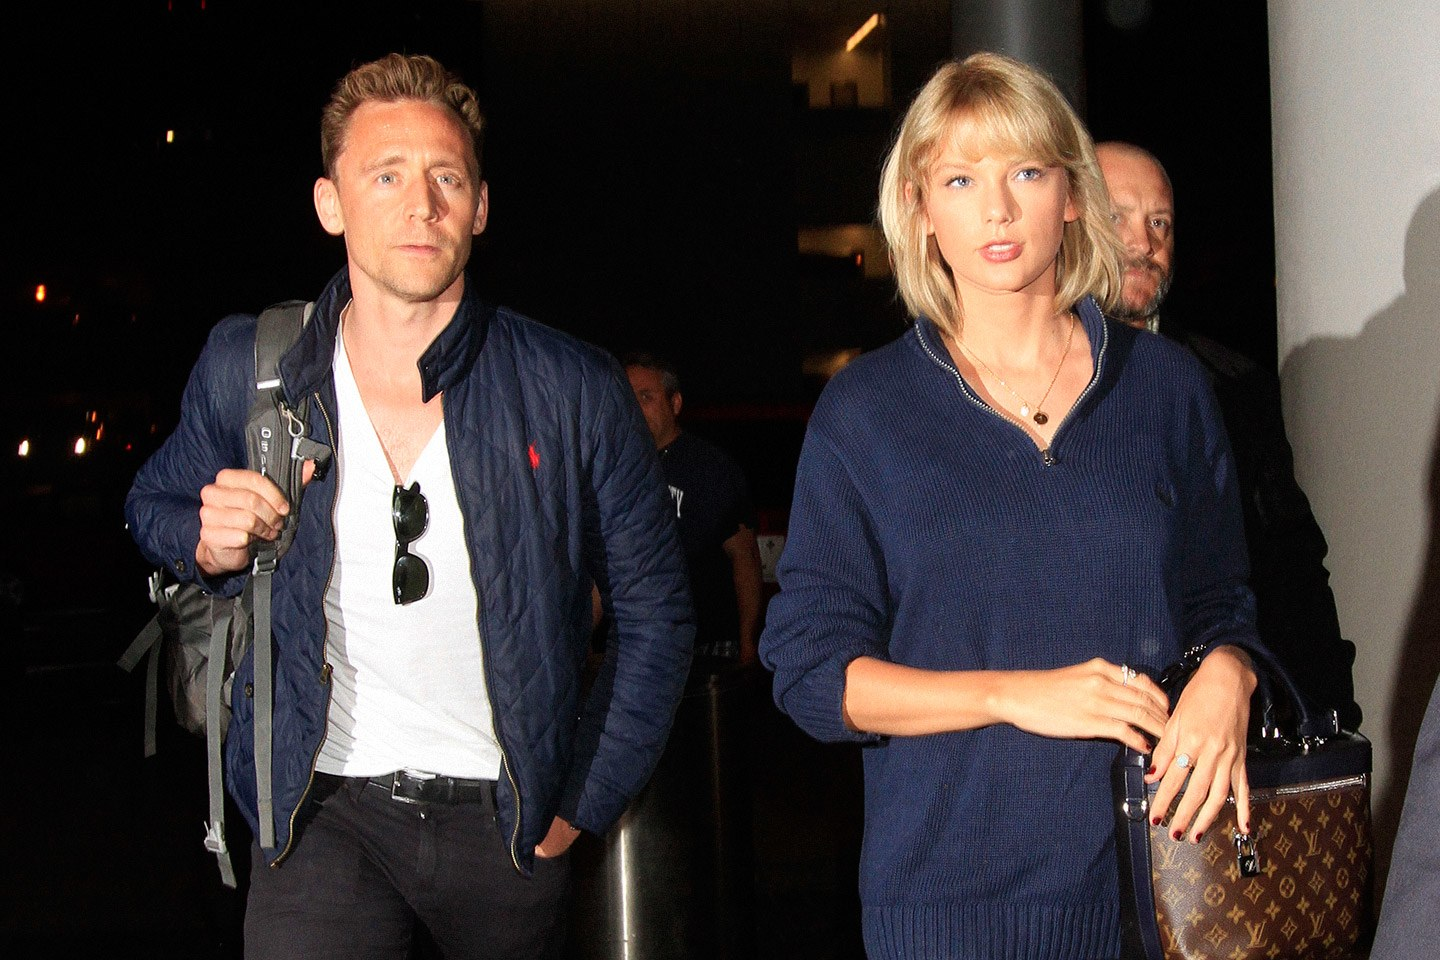 Taylor Swift Unfollowing Tom Hiddleston On Instagram May Or May Not Mean Something